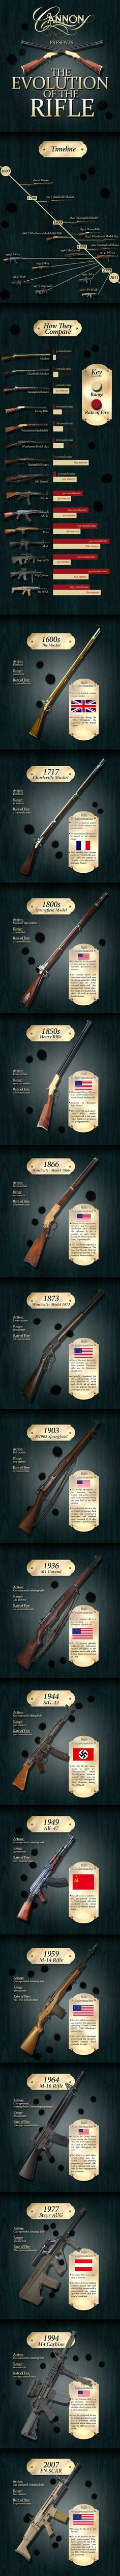 The Evolution of the Rifle by Cannon Gun Safes